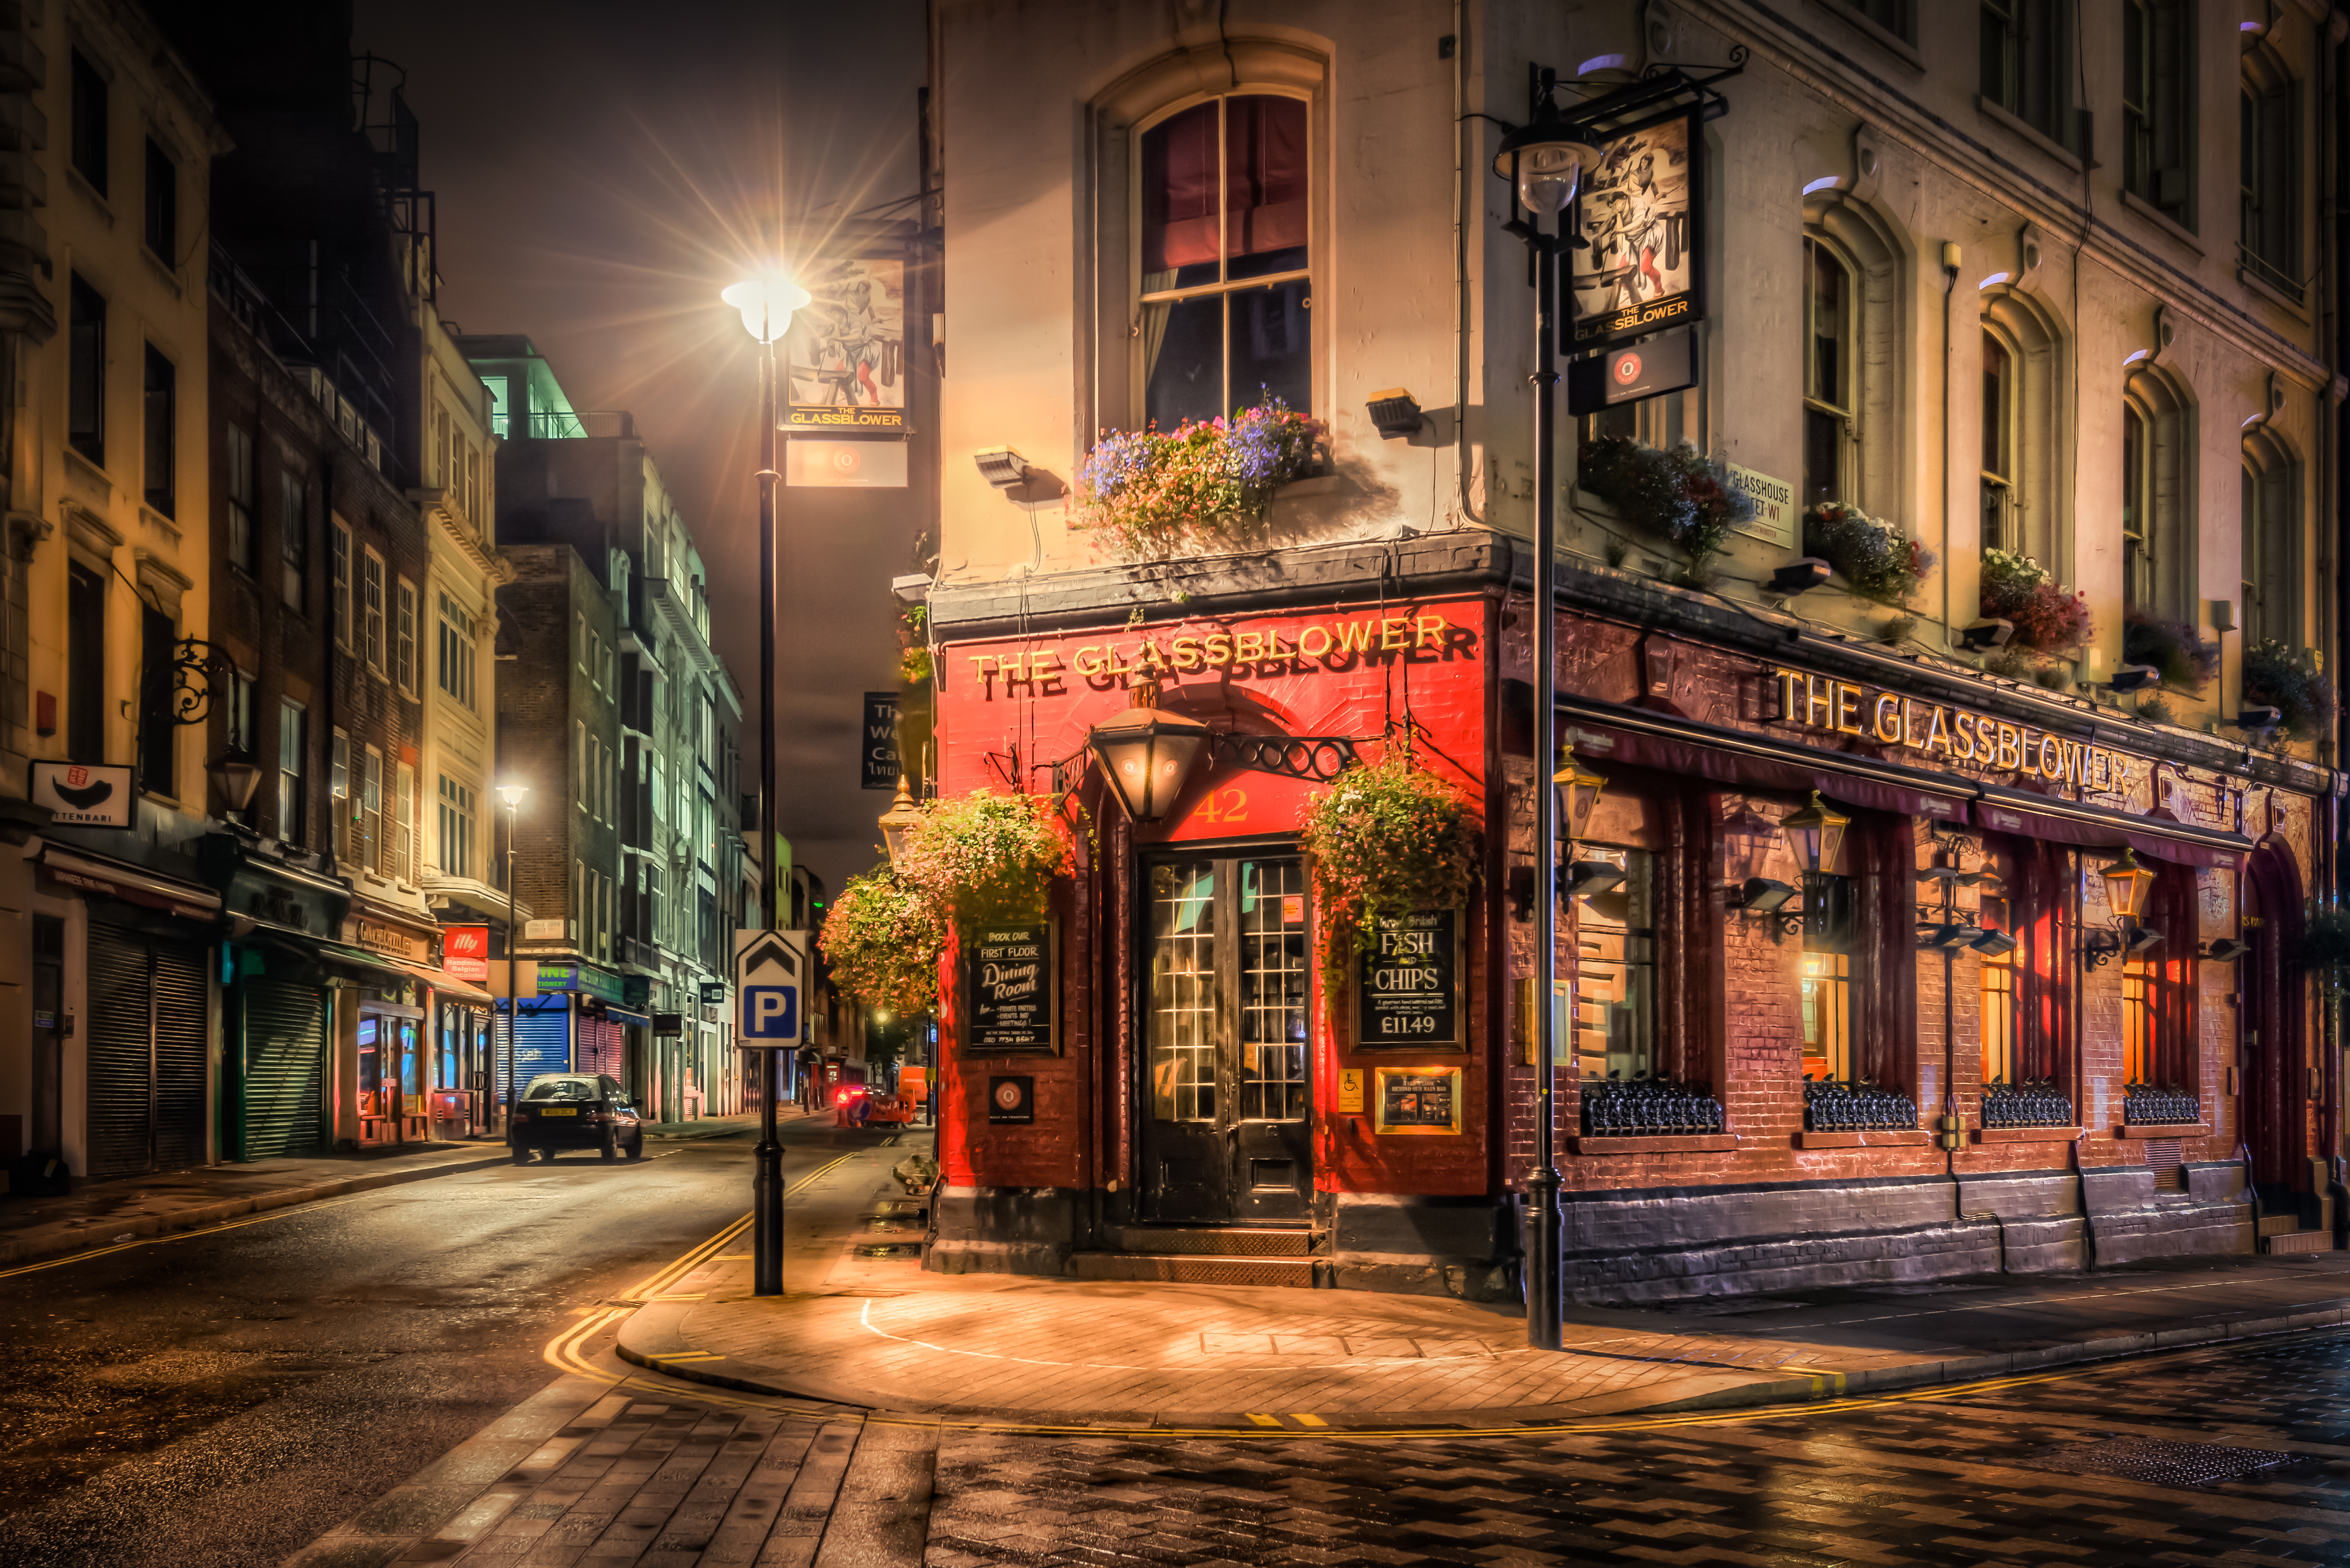 The Brewer Pub 4k Ultra HD Wallpaper And Background Image